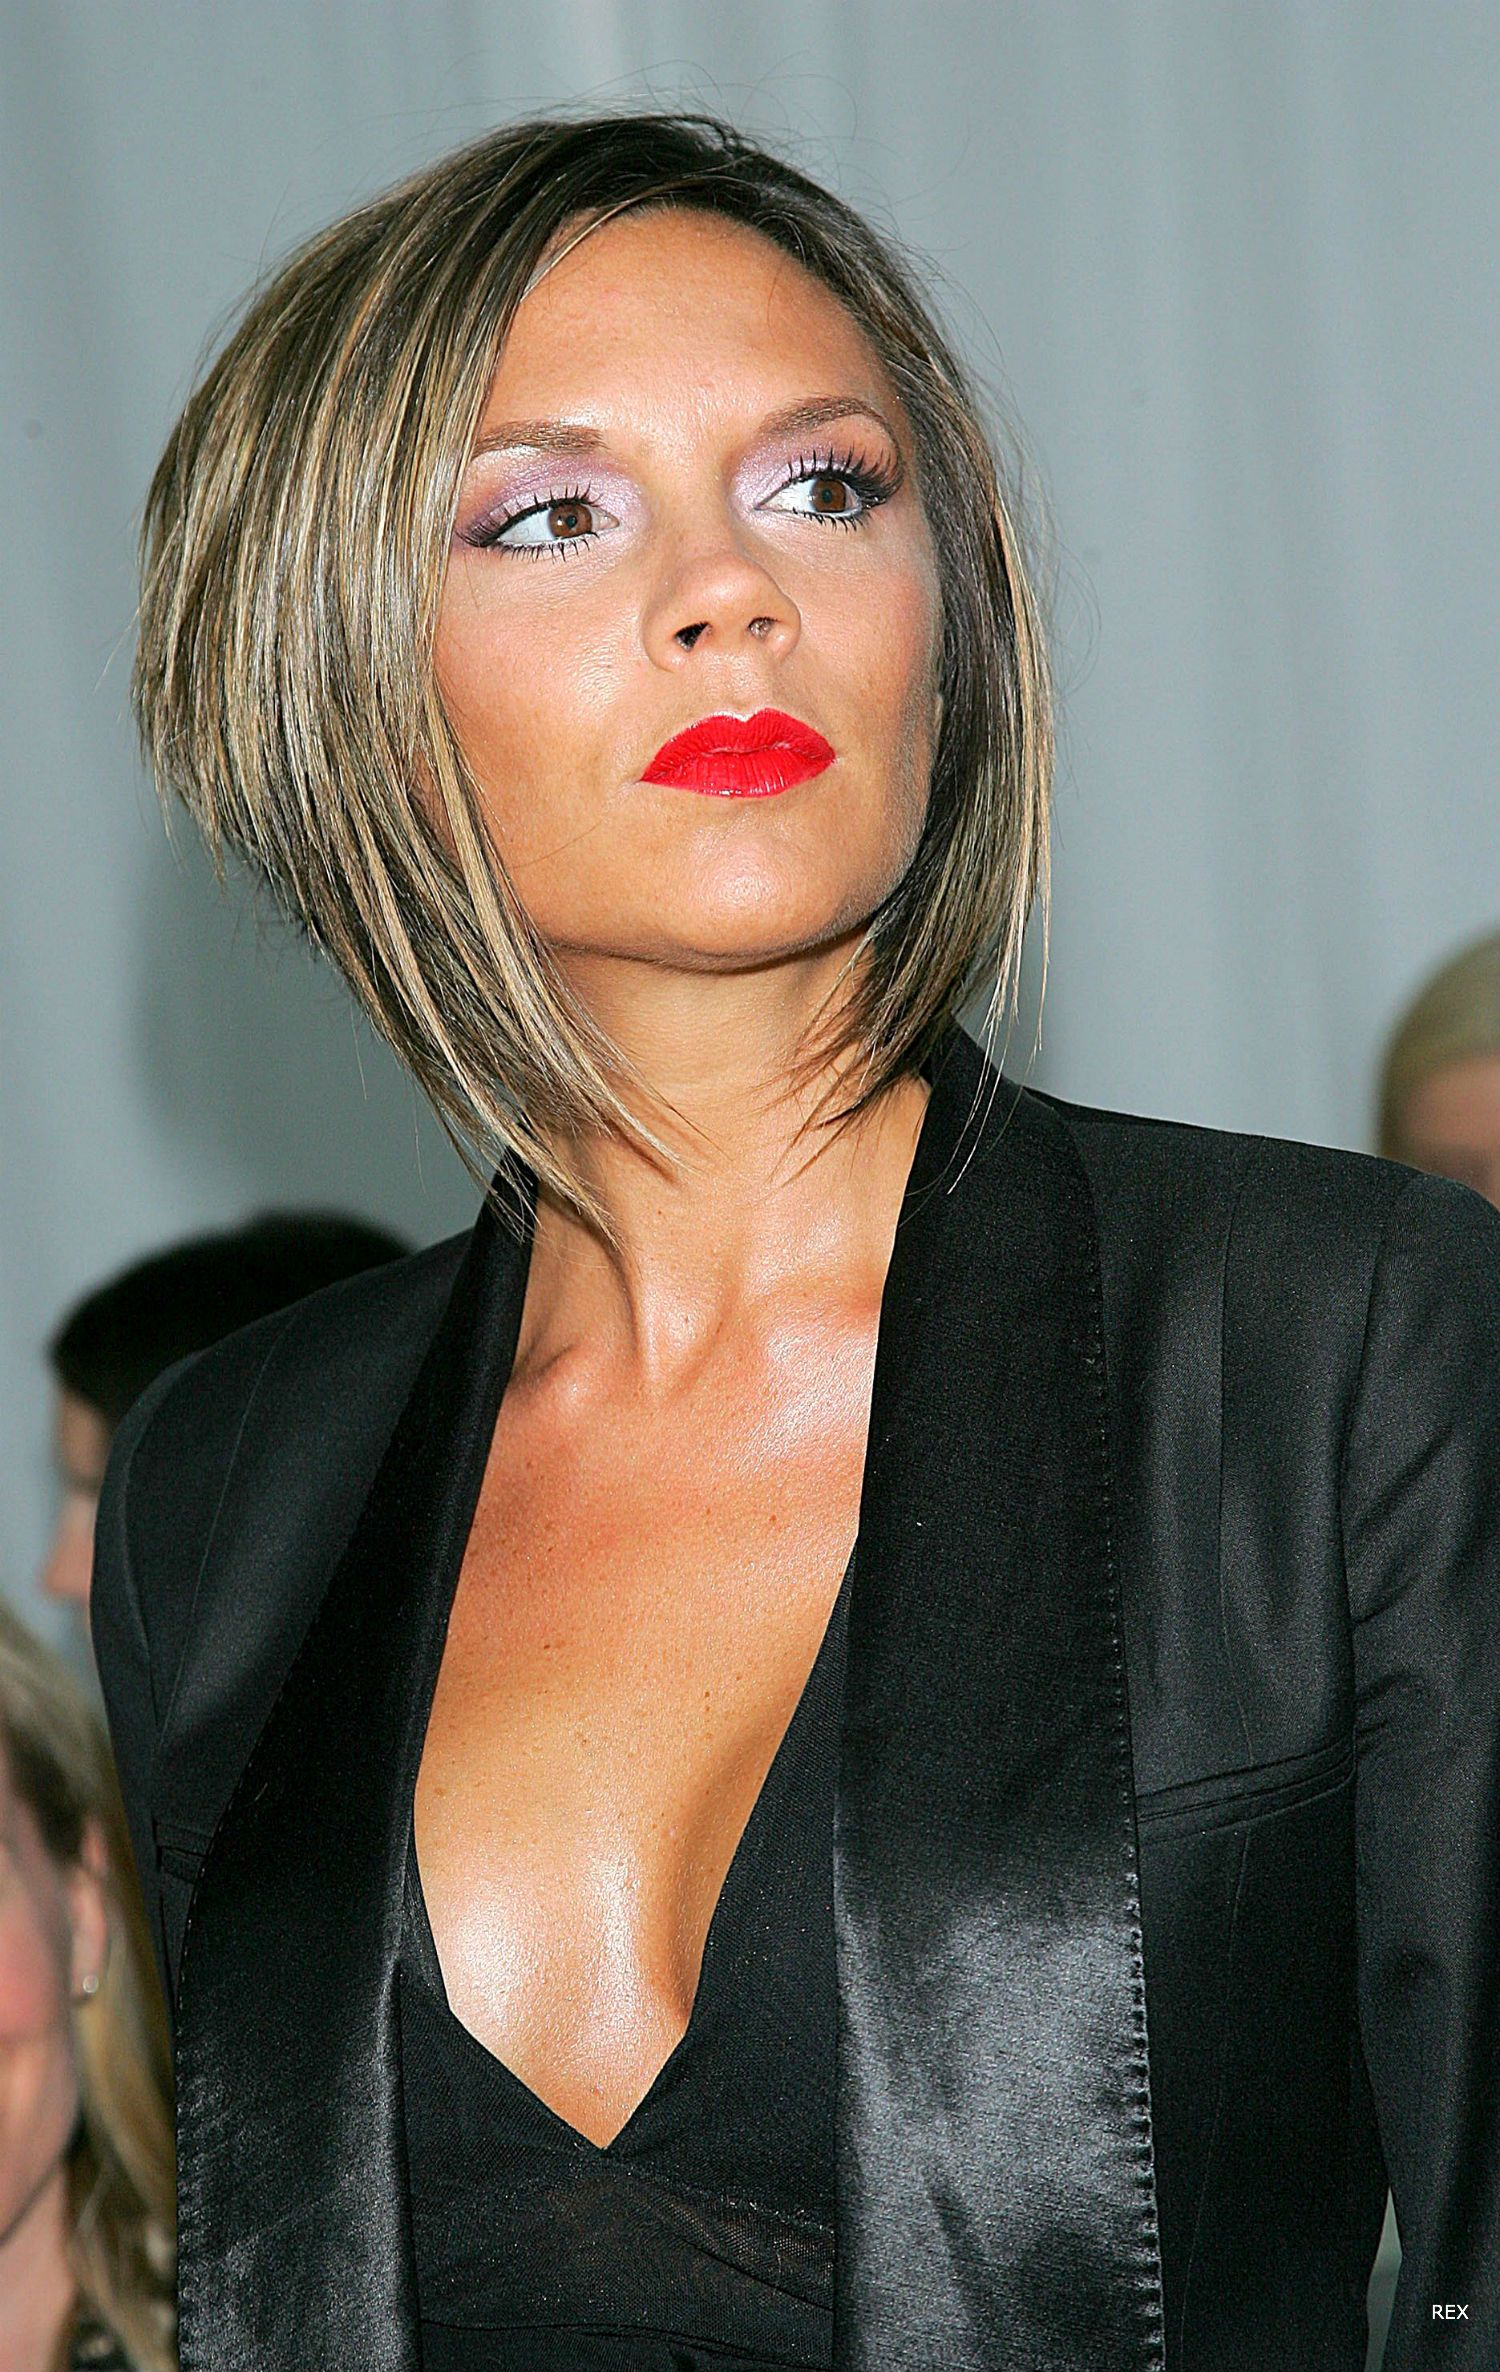 Famous Hairstyles The Best Of British Hairstyles Victoria Beckham's Famous Pob Was